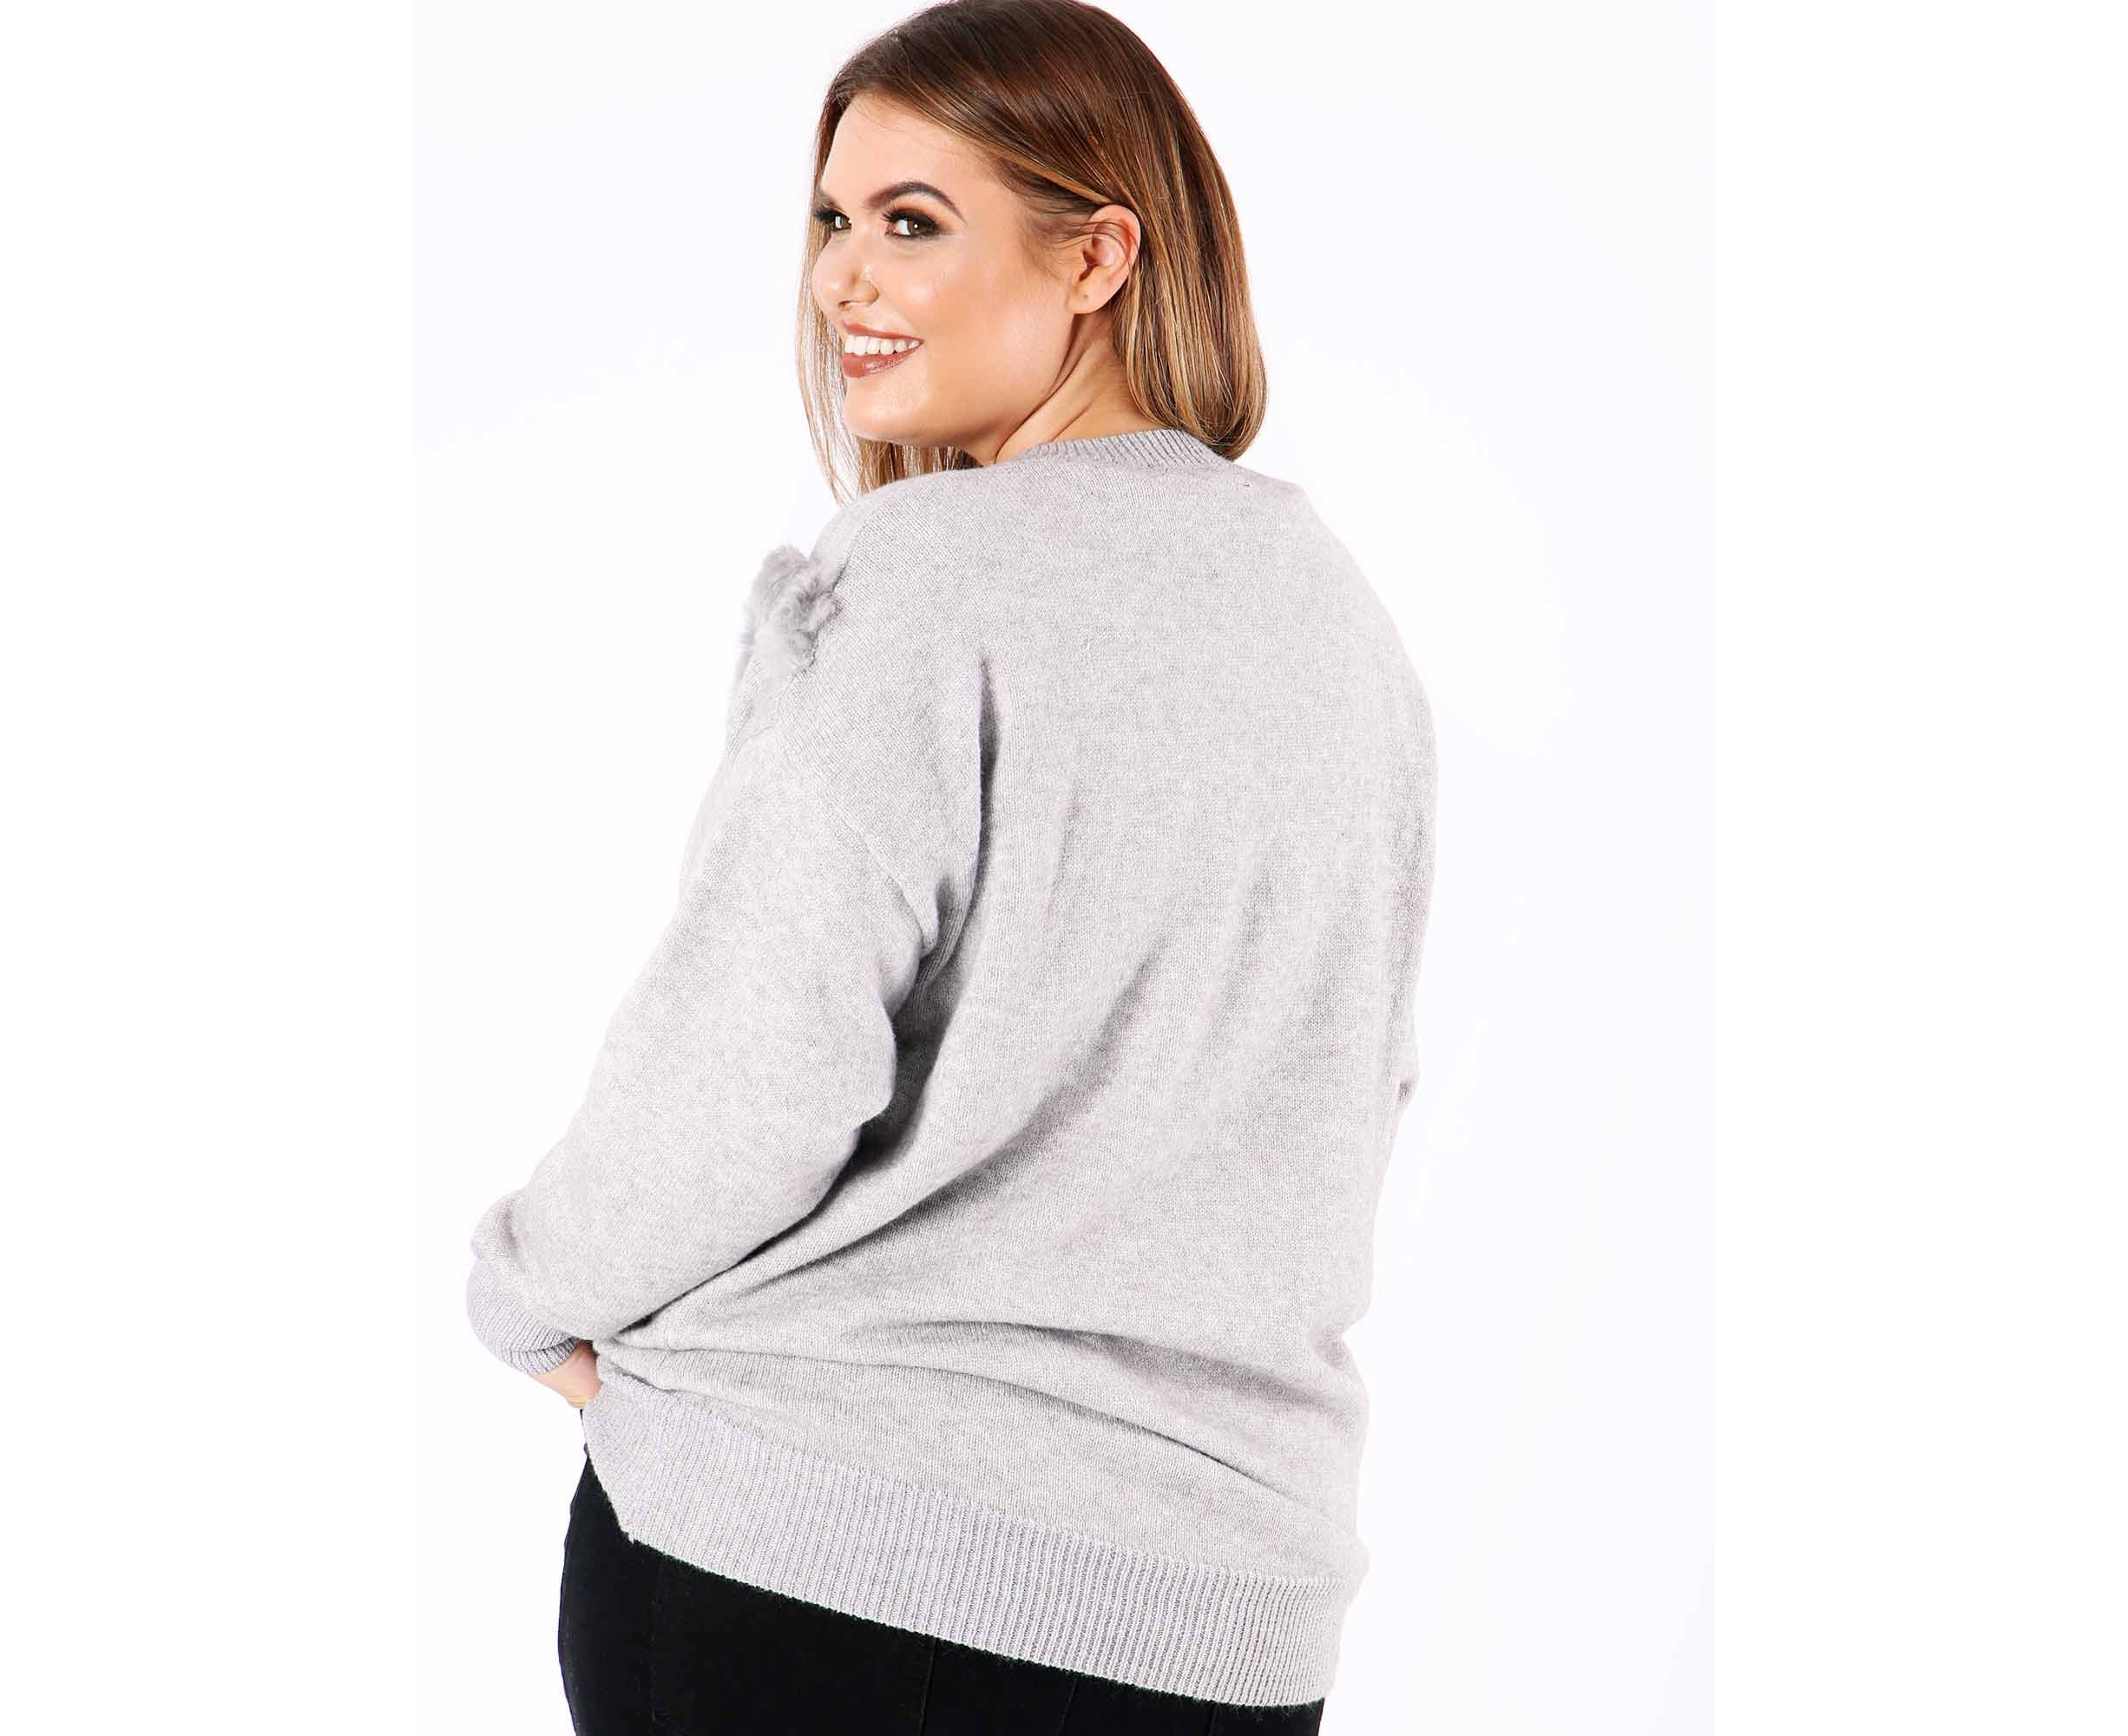 6546e9b9d16 Koko Women s Plus Size Faux Fur Chevron Jumper in Grey